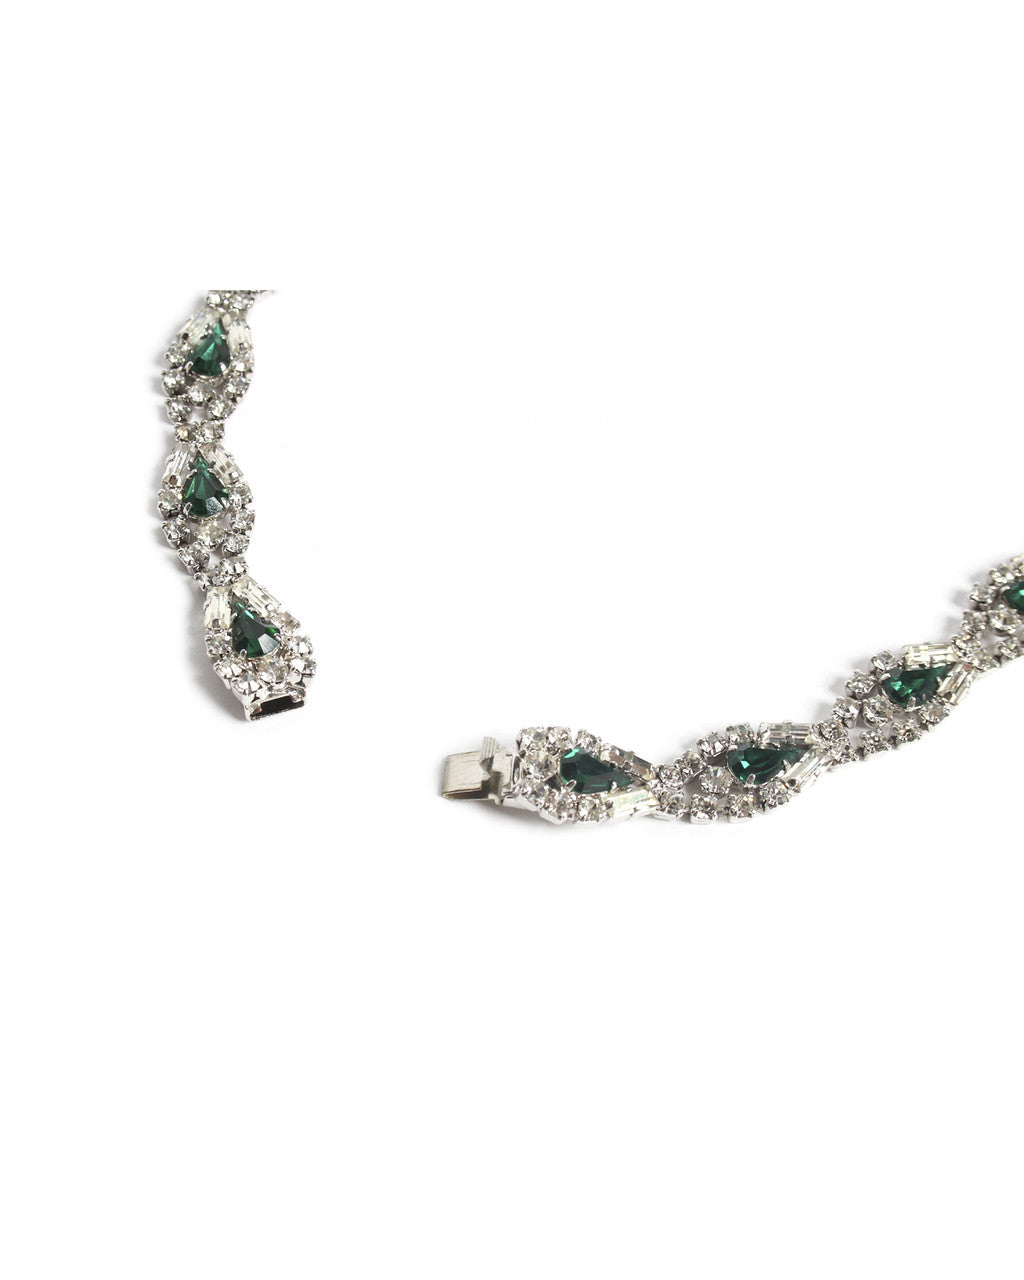 Faux Emerald Necklace - C.Madeleine's